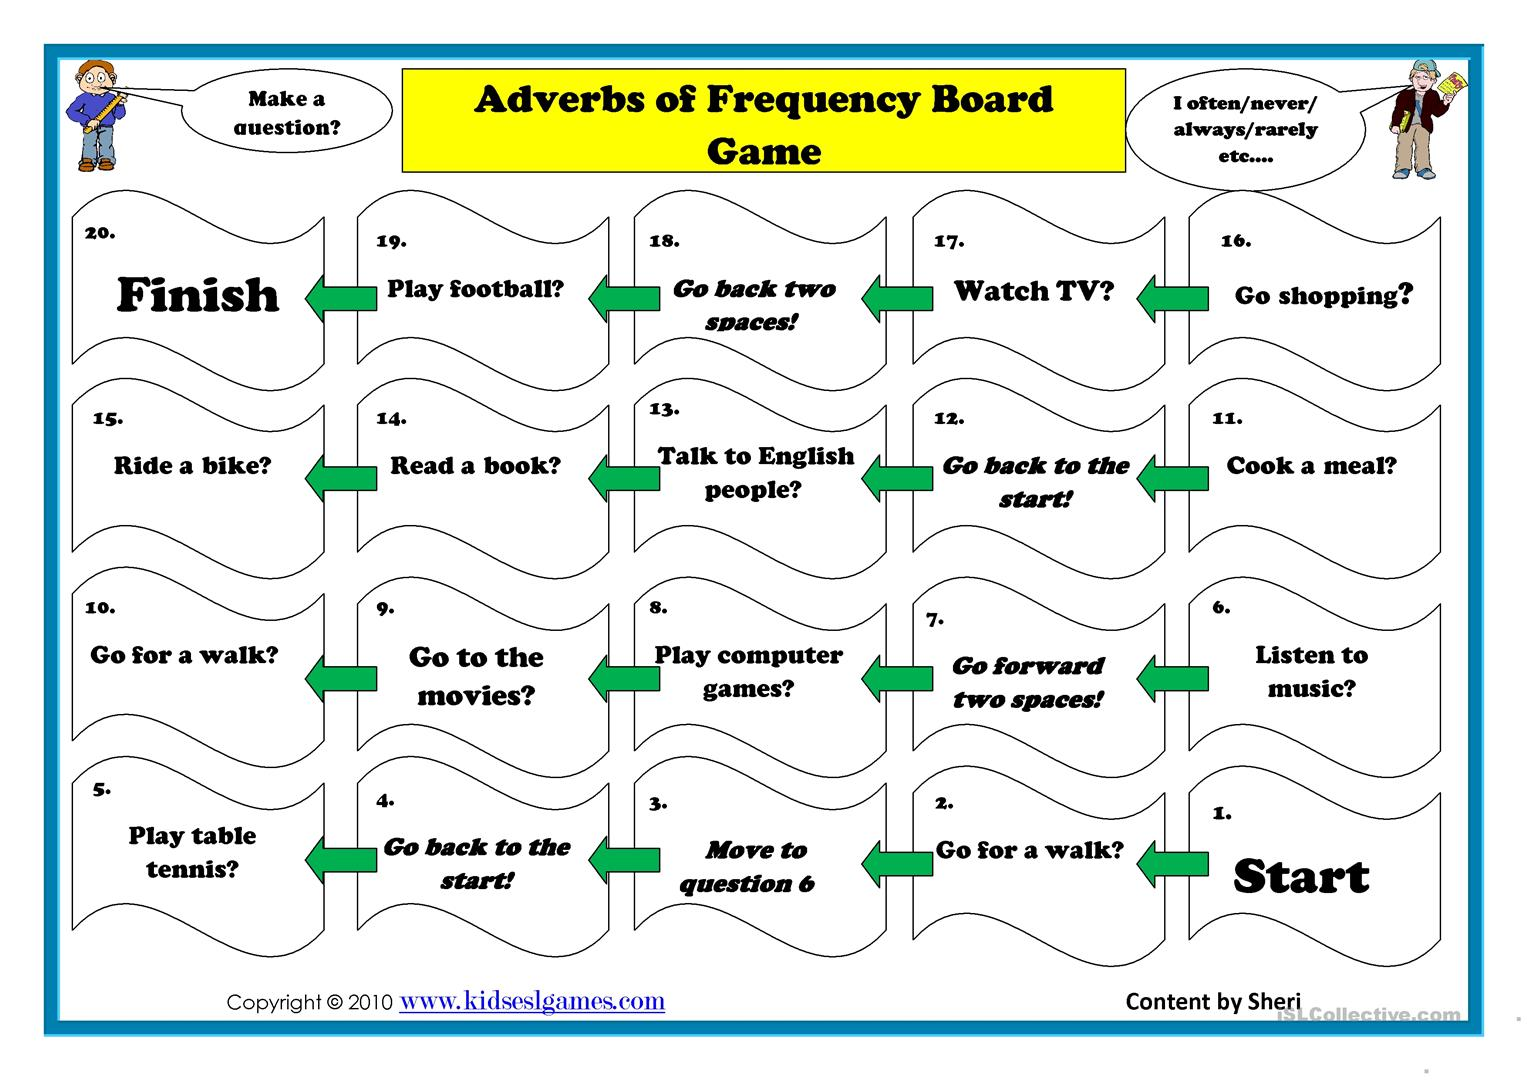 Adverb Of Frequency Board Game Worksheet